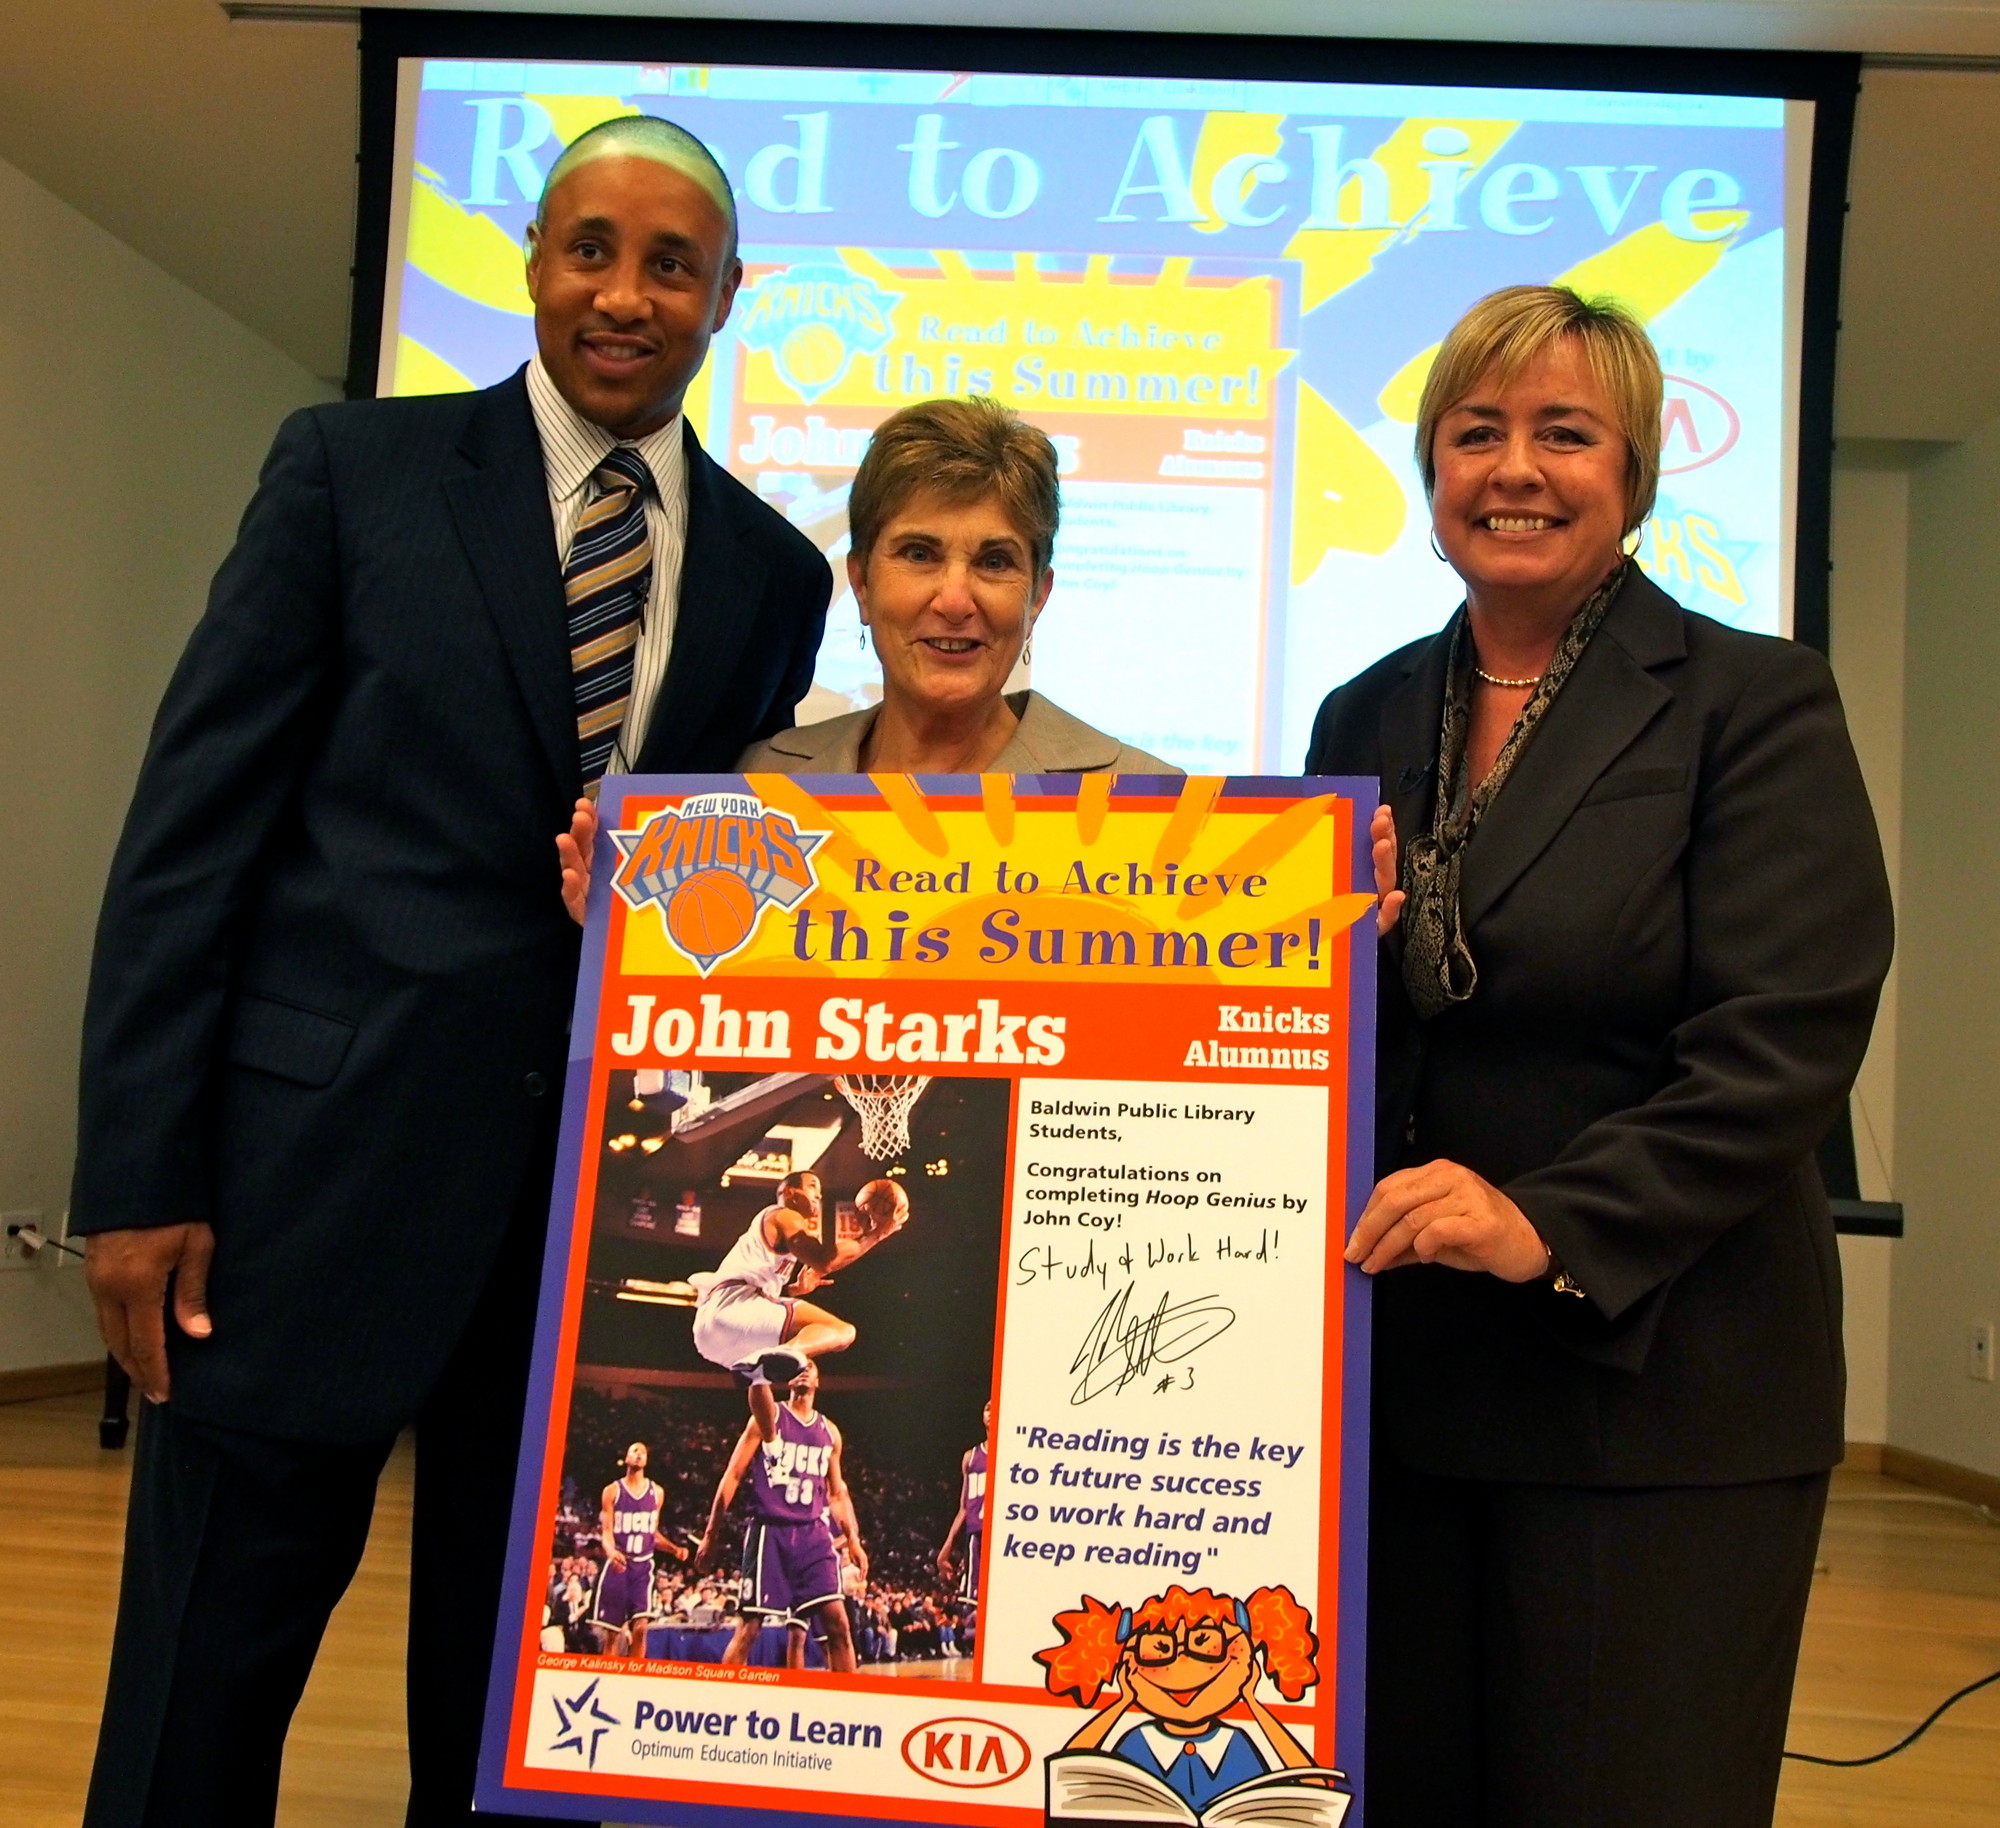 Catherine Overton, pictured center with former Knicks guard John Starks and Town of Hempstead Supervisor Kate Murray at a summer reading promotion, is leaving the director's position at the Baldwin Public Library on Sept. 6.